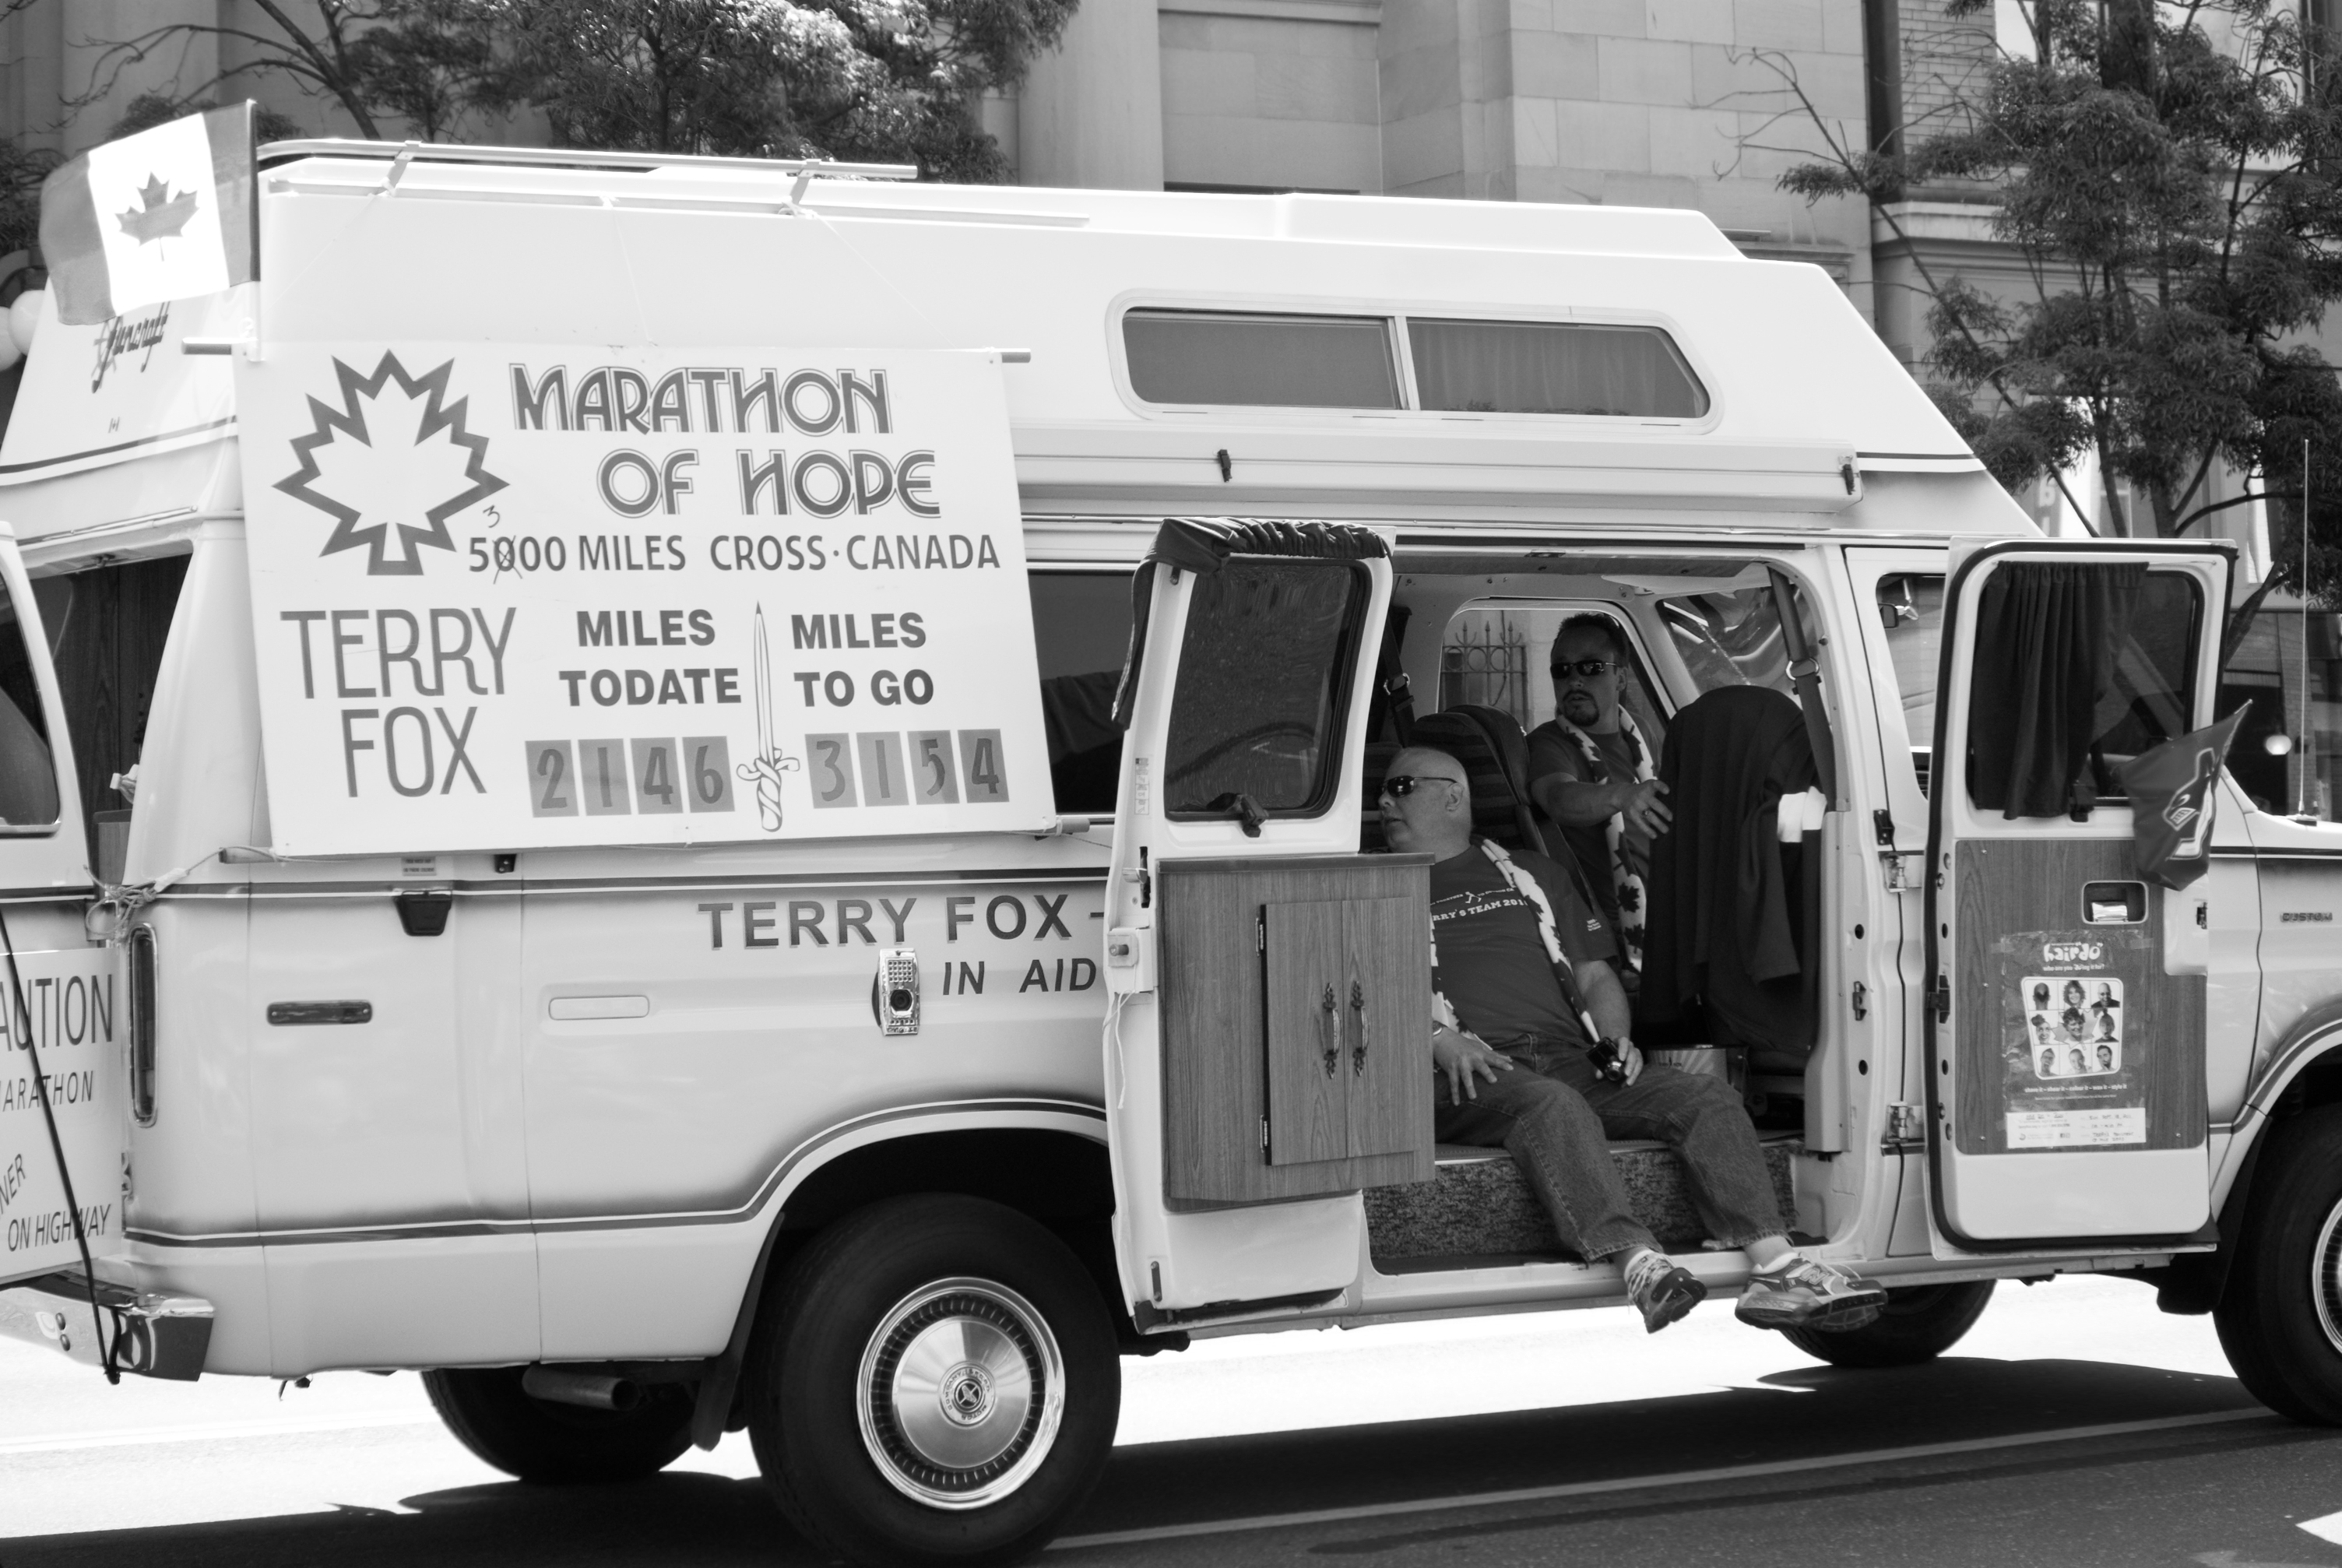 marathon of hope truck